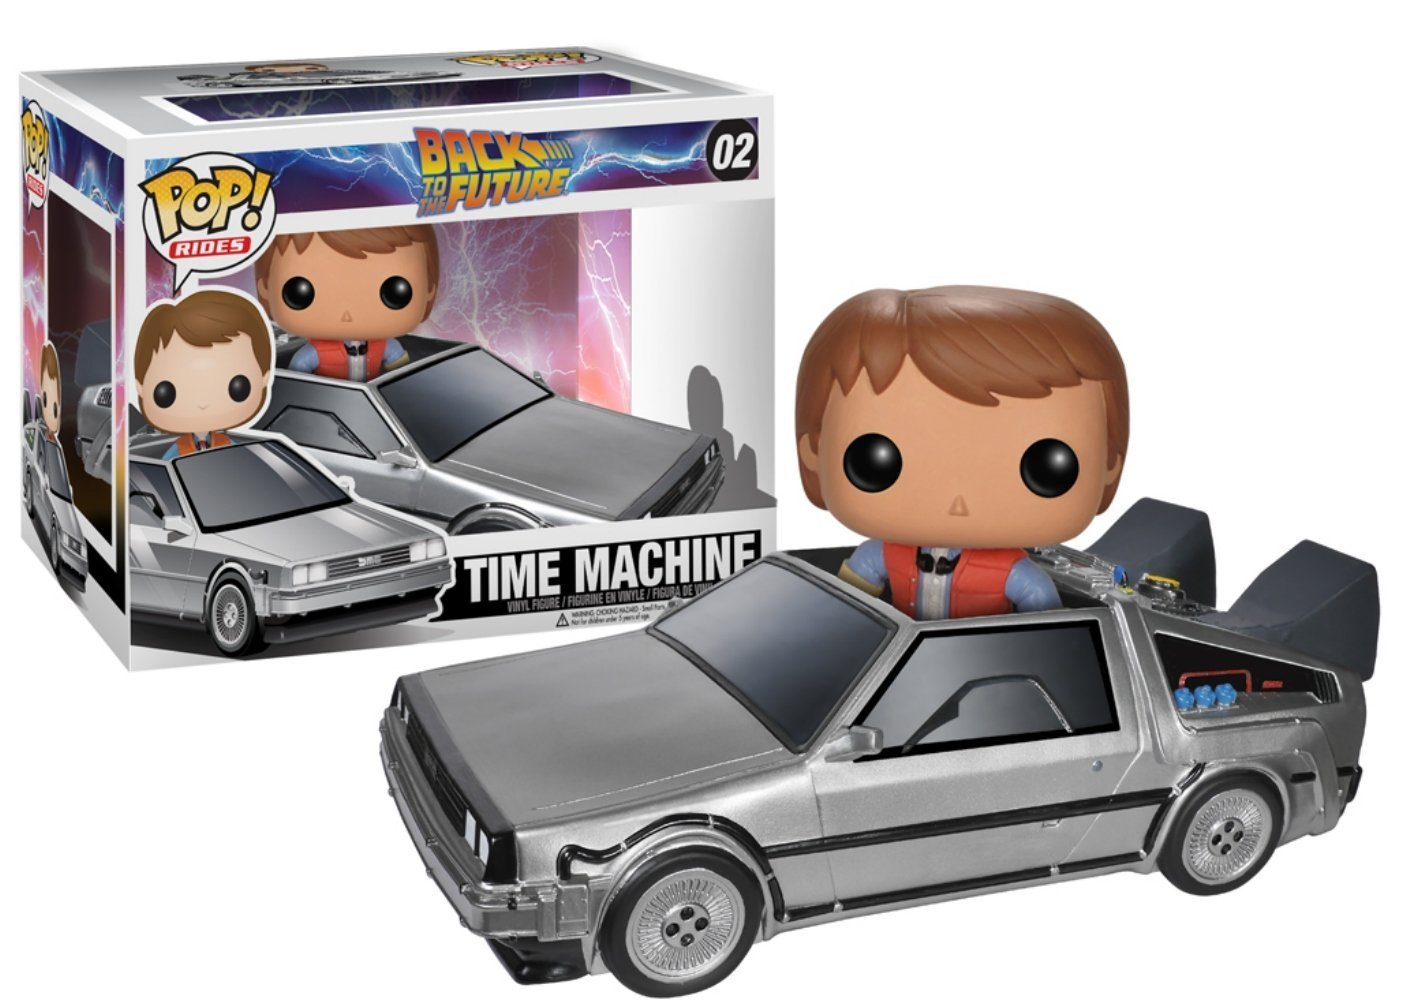 Delorean funko pop